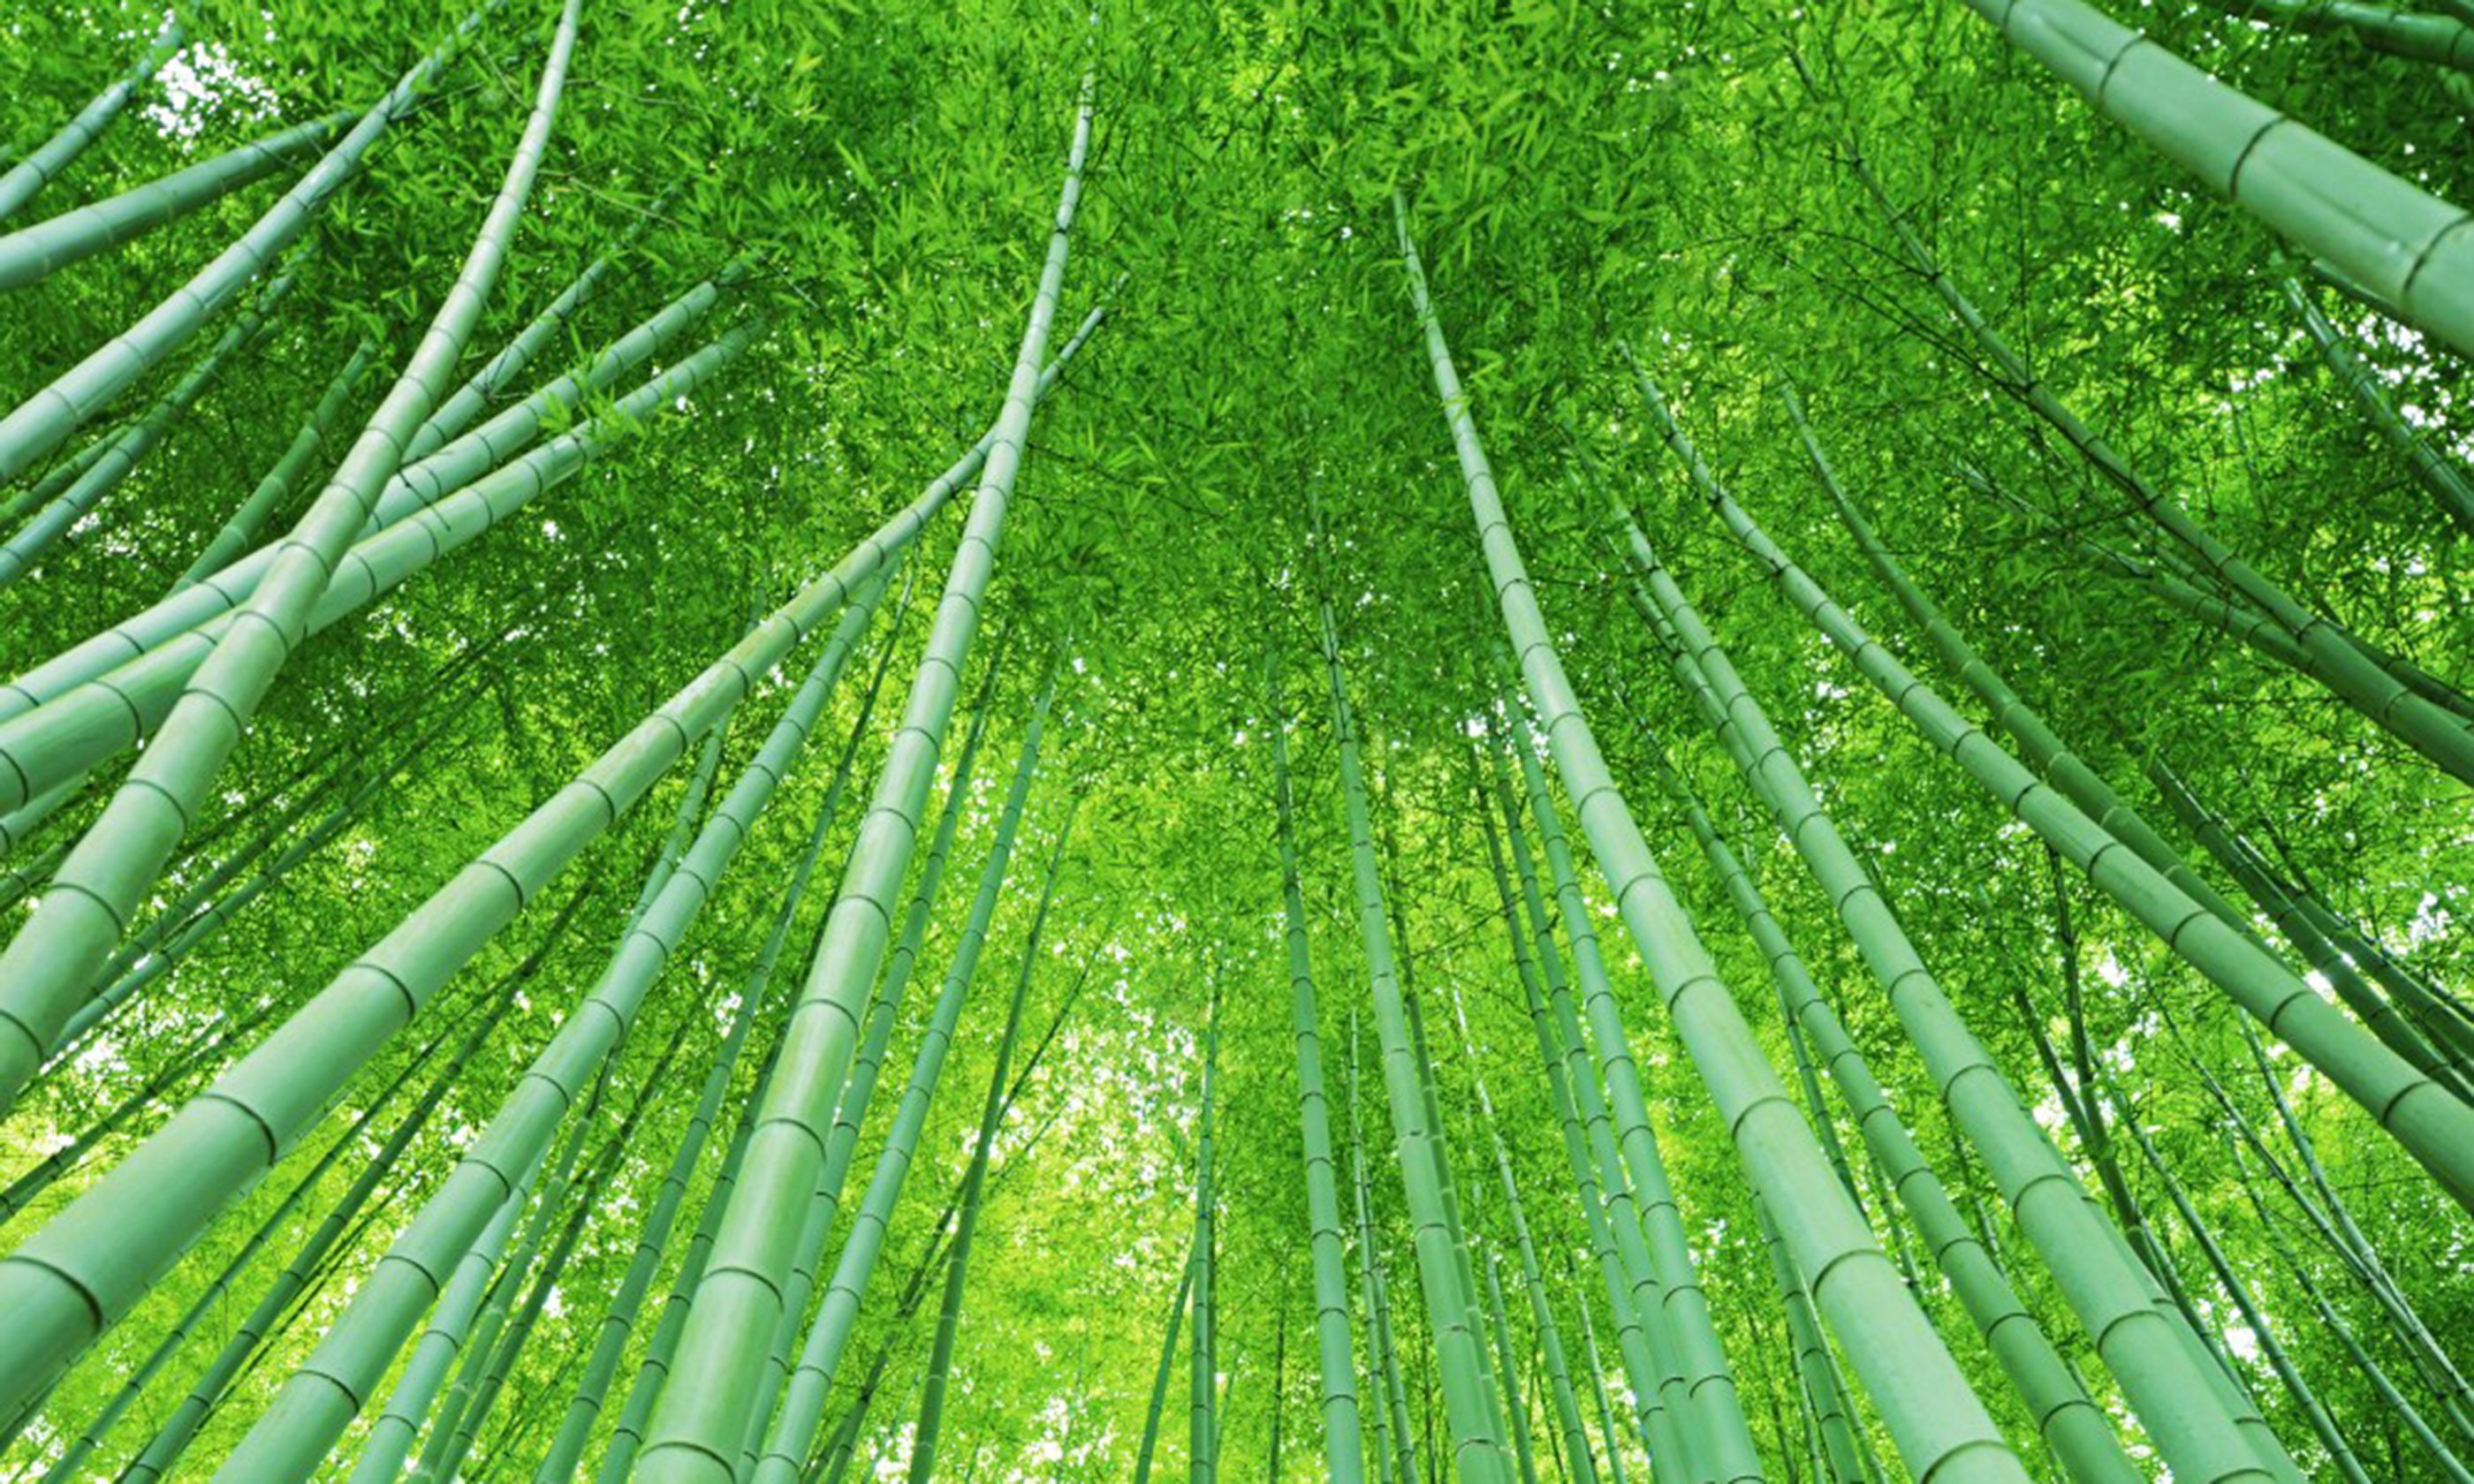 Arashiyama bamboo grove (Lisa Michele Burns)